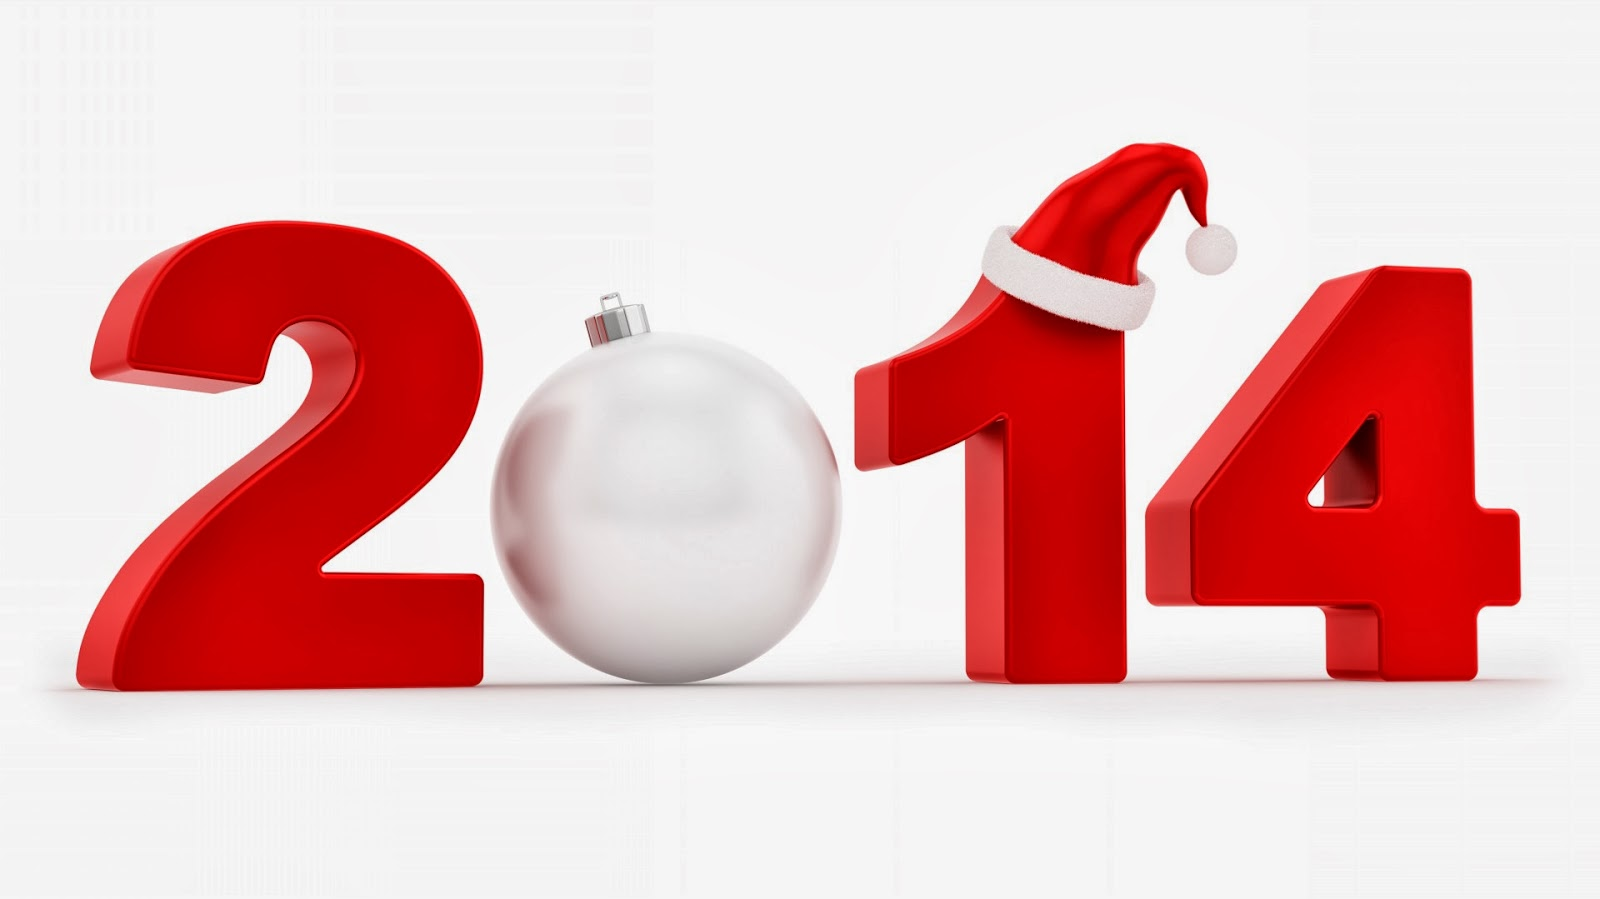 2014 wallpapers hd wallpapers best happy new year wallpaper 2014 hd voltagebd Image collections